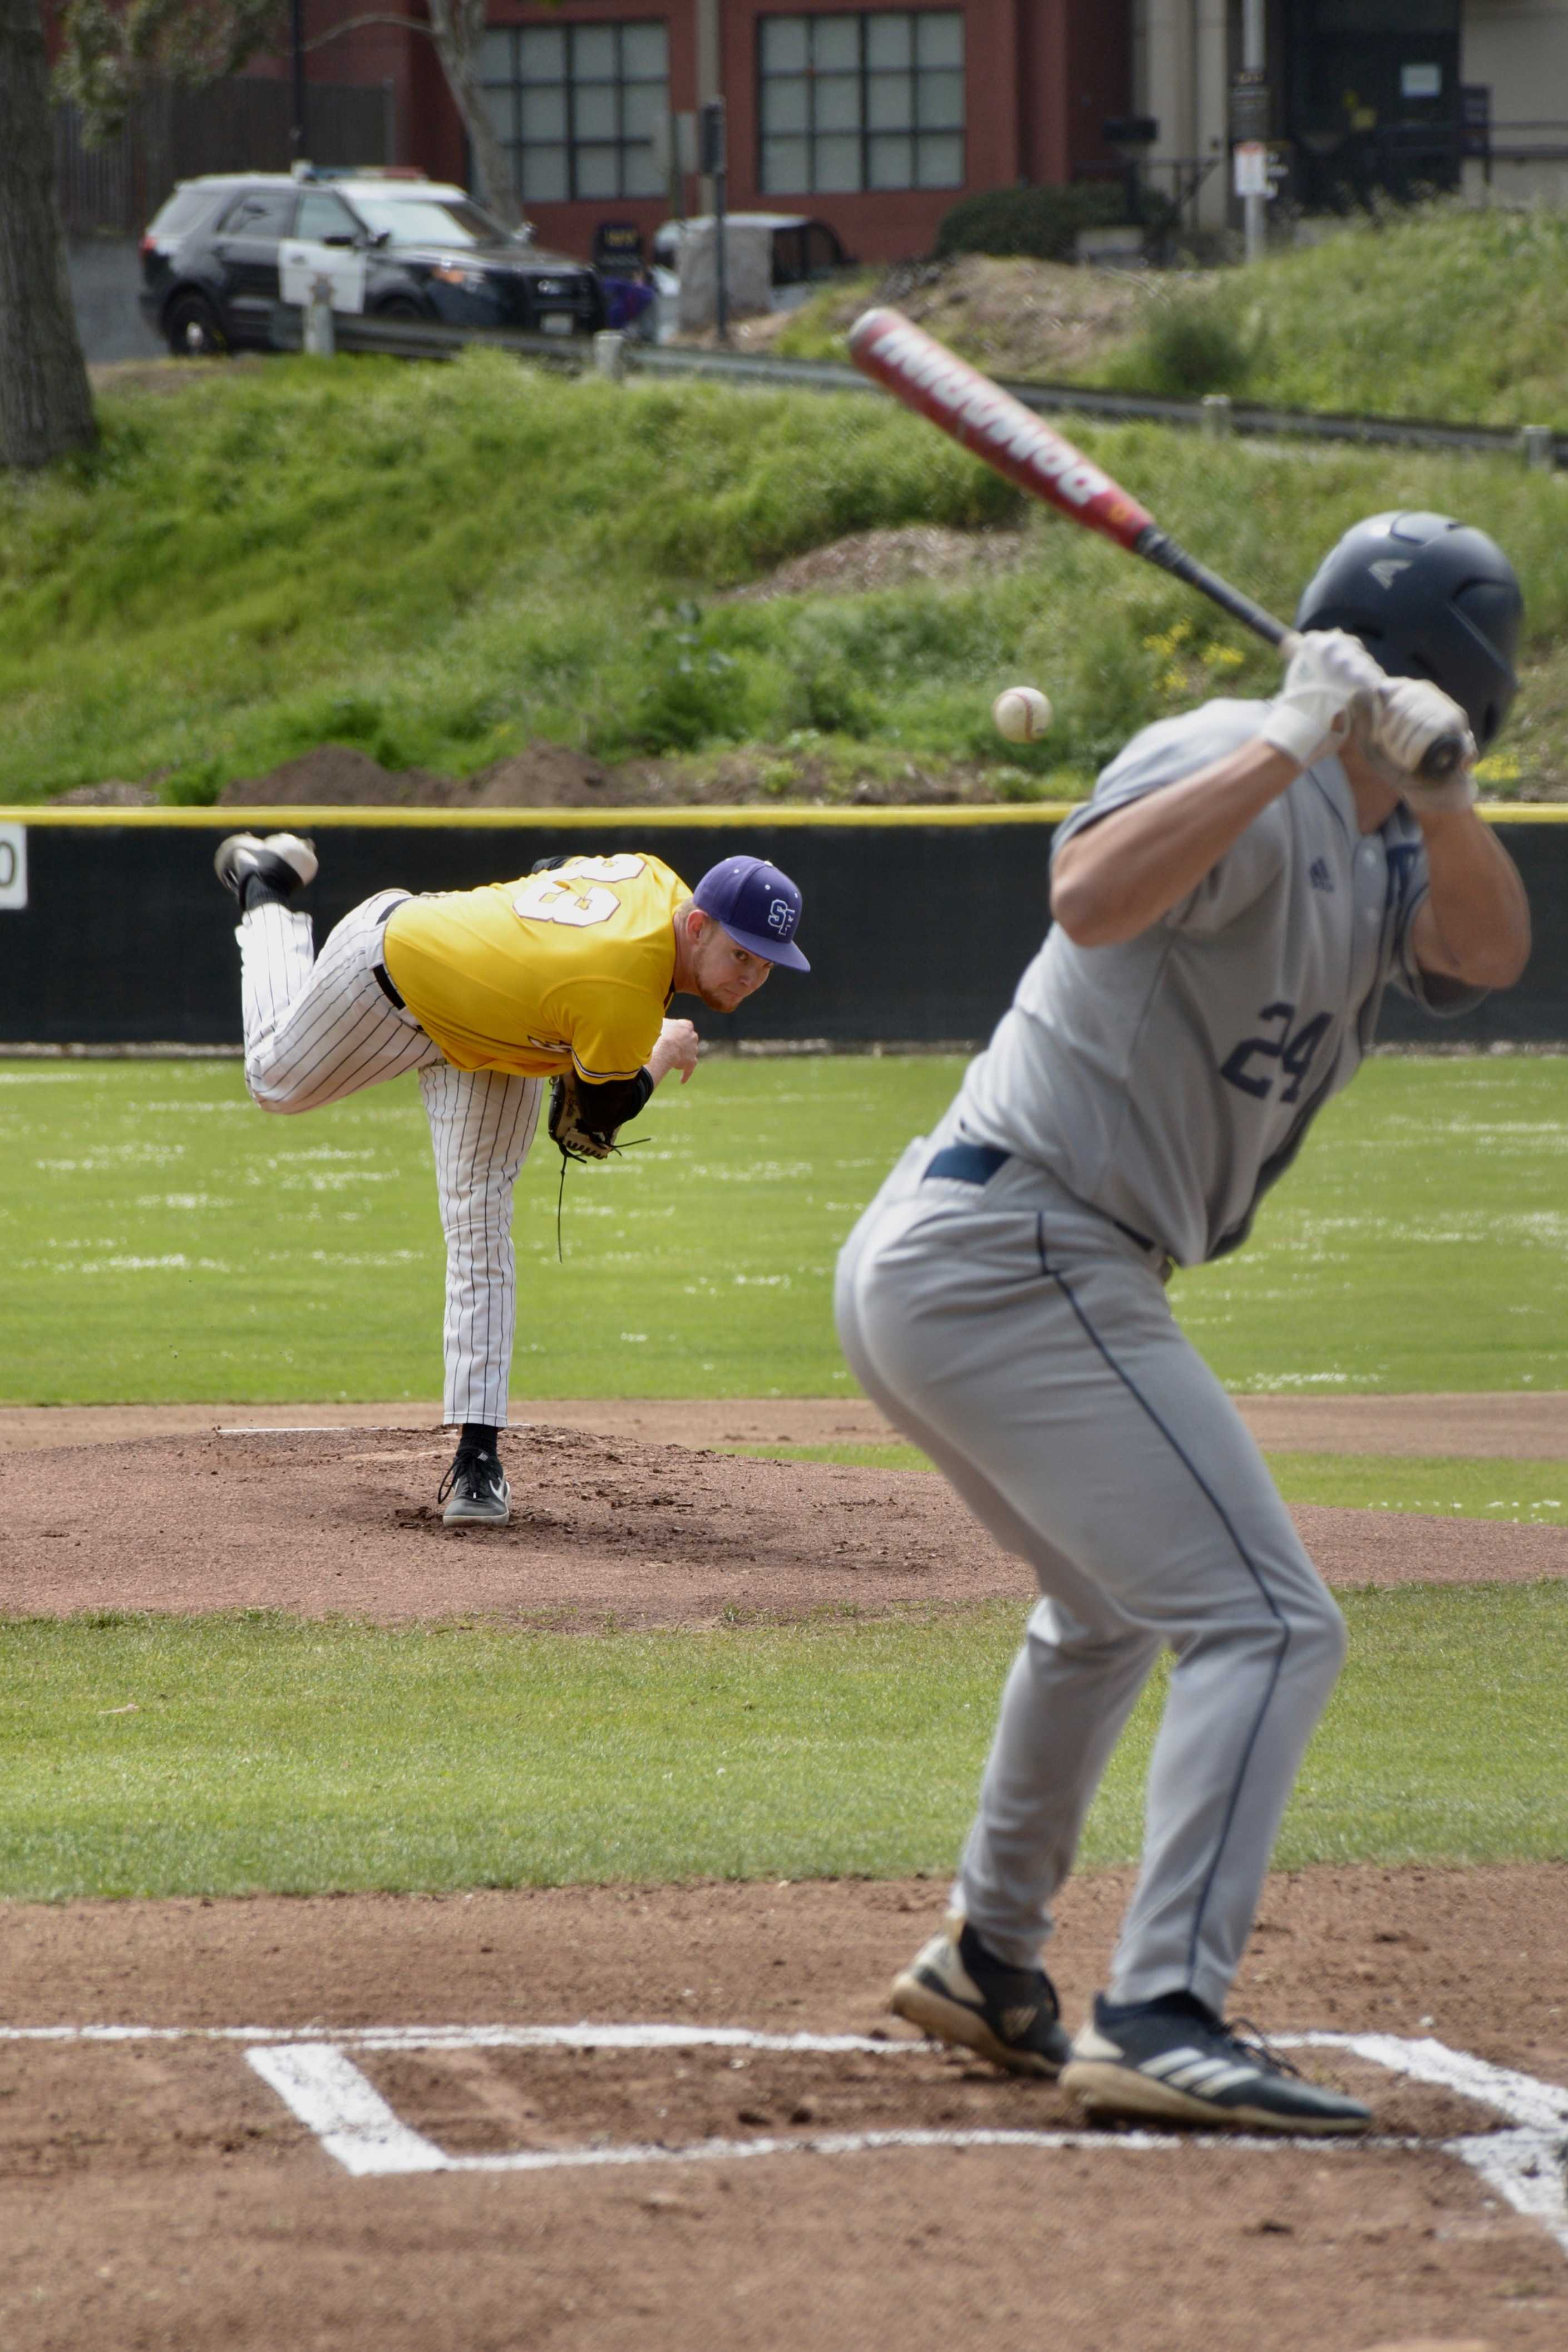 SF State Gators pitcher Jordyn Eglite pitches to Cal State Monterey Bay Otters outfielder TJ Dove during the Gators' game against the Cal State Monterey Bay Otters on Saturday, April 20th. (TRISTEN ROWEAN/Golden Gate Xpress)